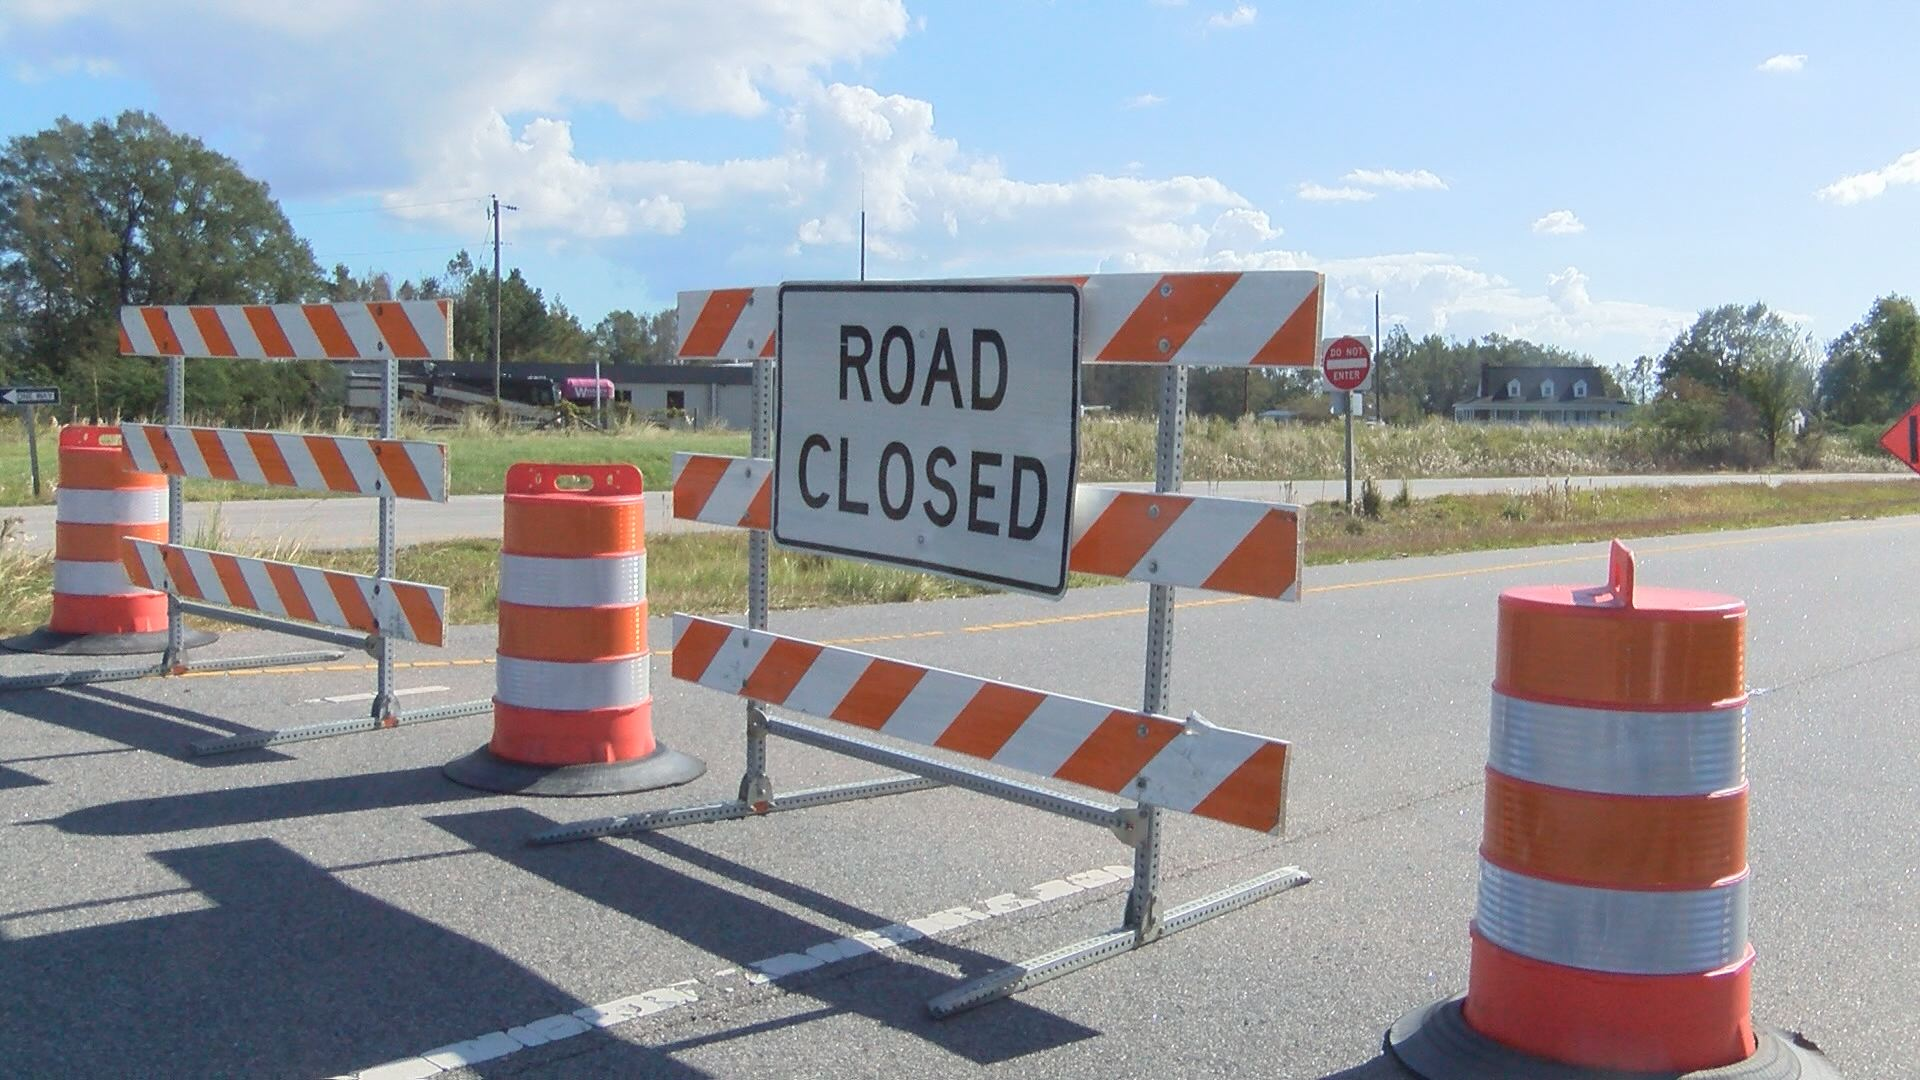 road-closure-zs_287554